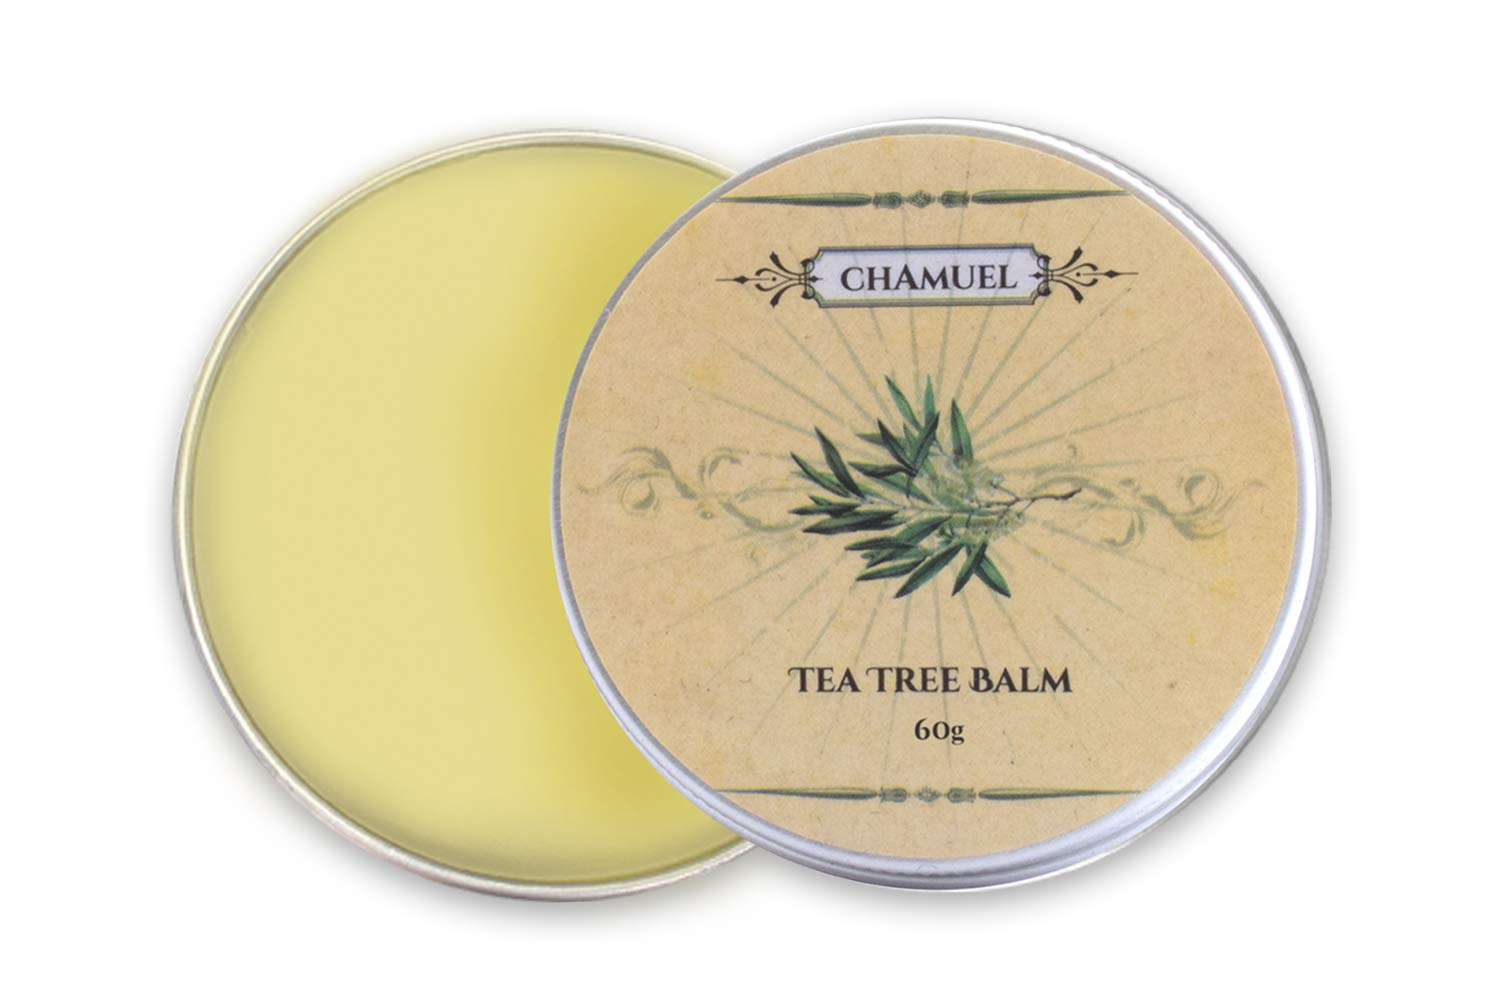 TEA TREE OIL BALM -100% All Natural | Relieves Common Skin Irritations. Great Antifungal Cream for Eczema, Psoriasis, Rashes, Dry Chapped Skin, Cuticles, Hemorrhoids, Saddle Sores and more! Guaranteed by Chamuel